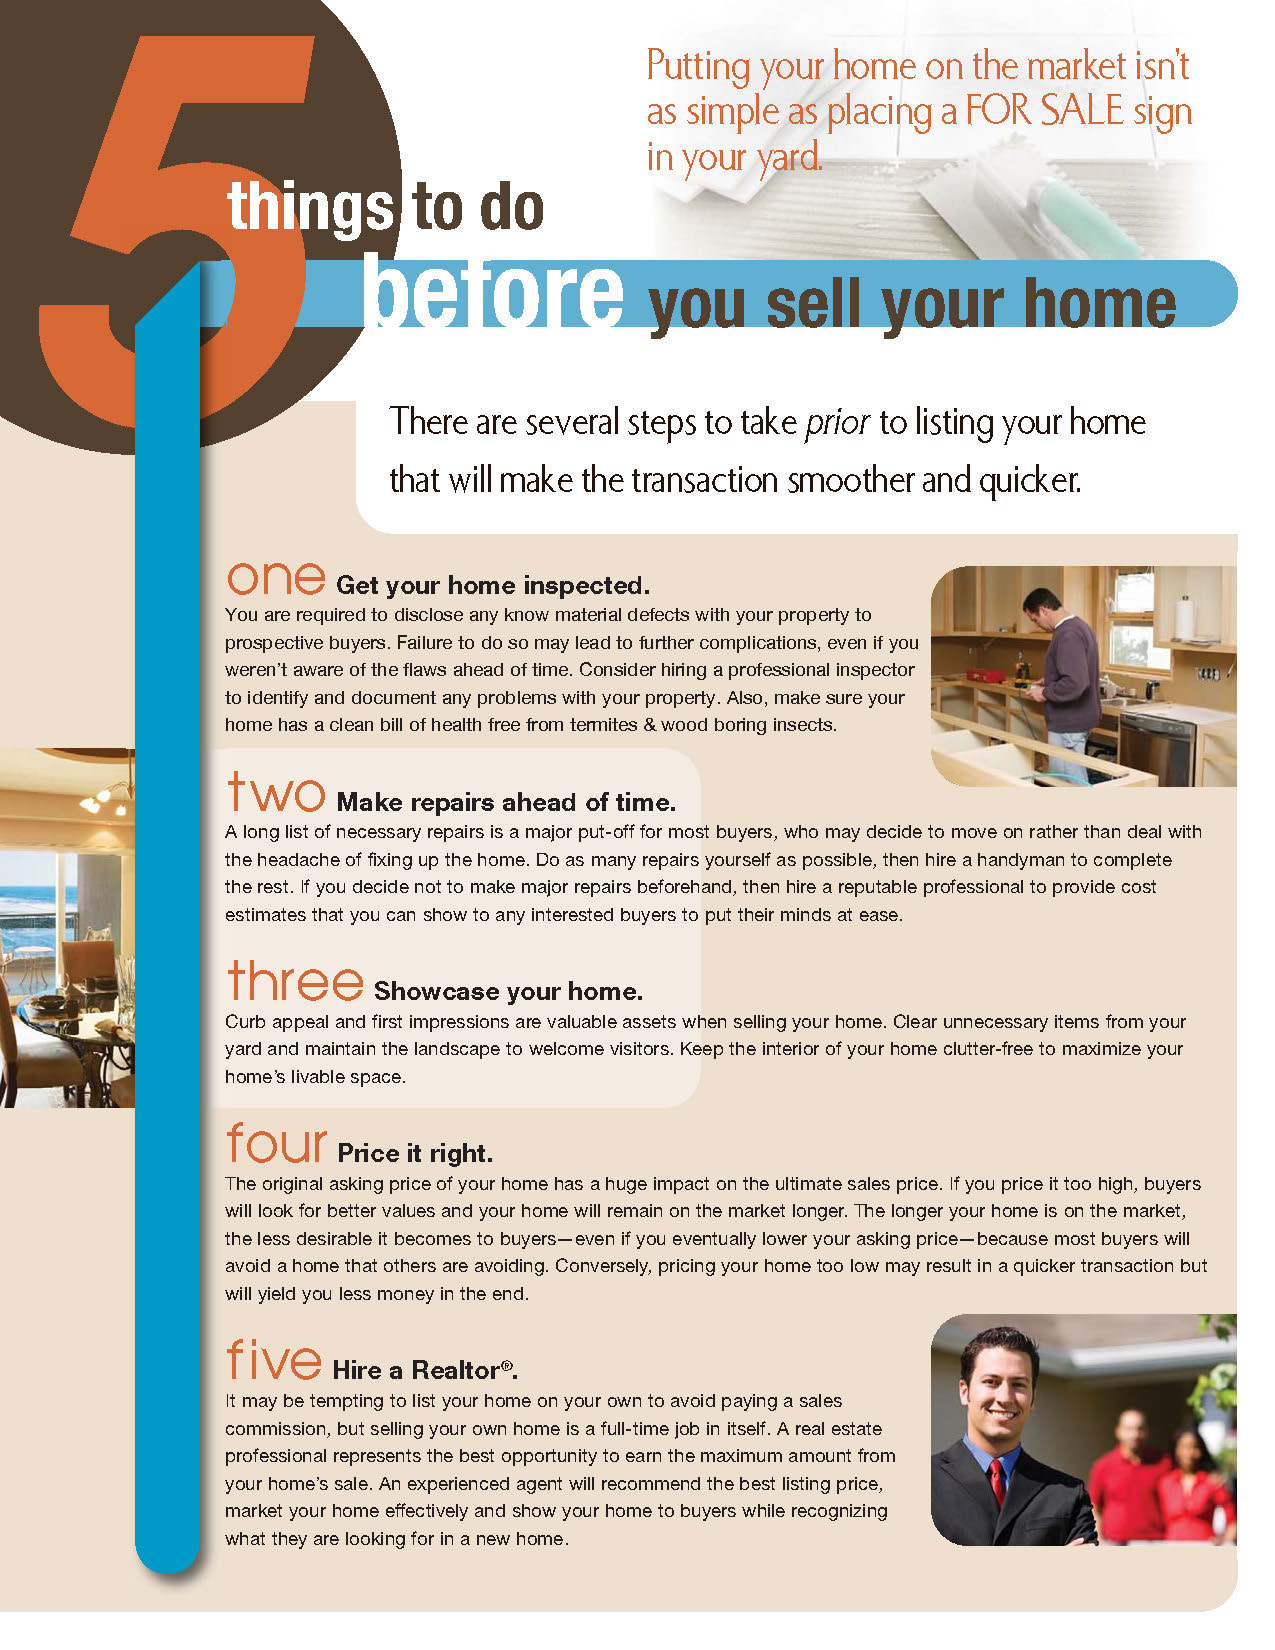 5 Things to Do Before Selling Your Home